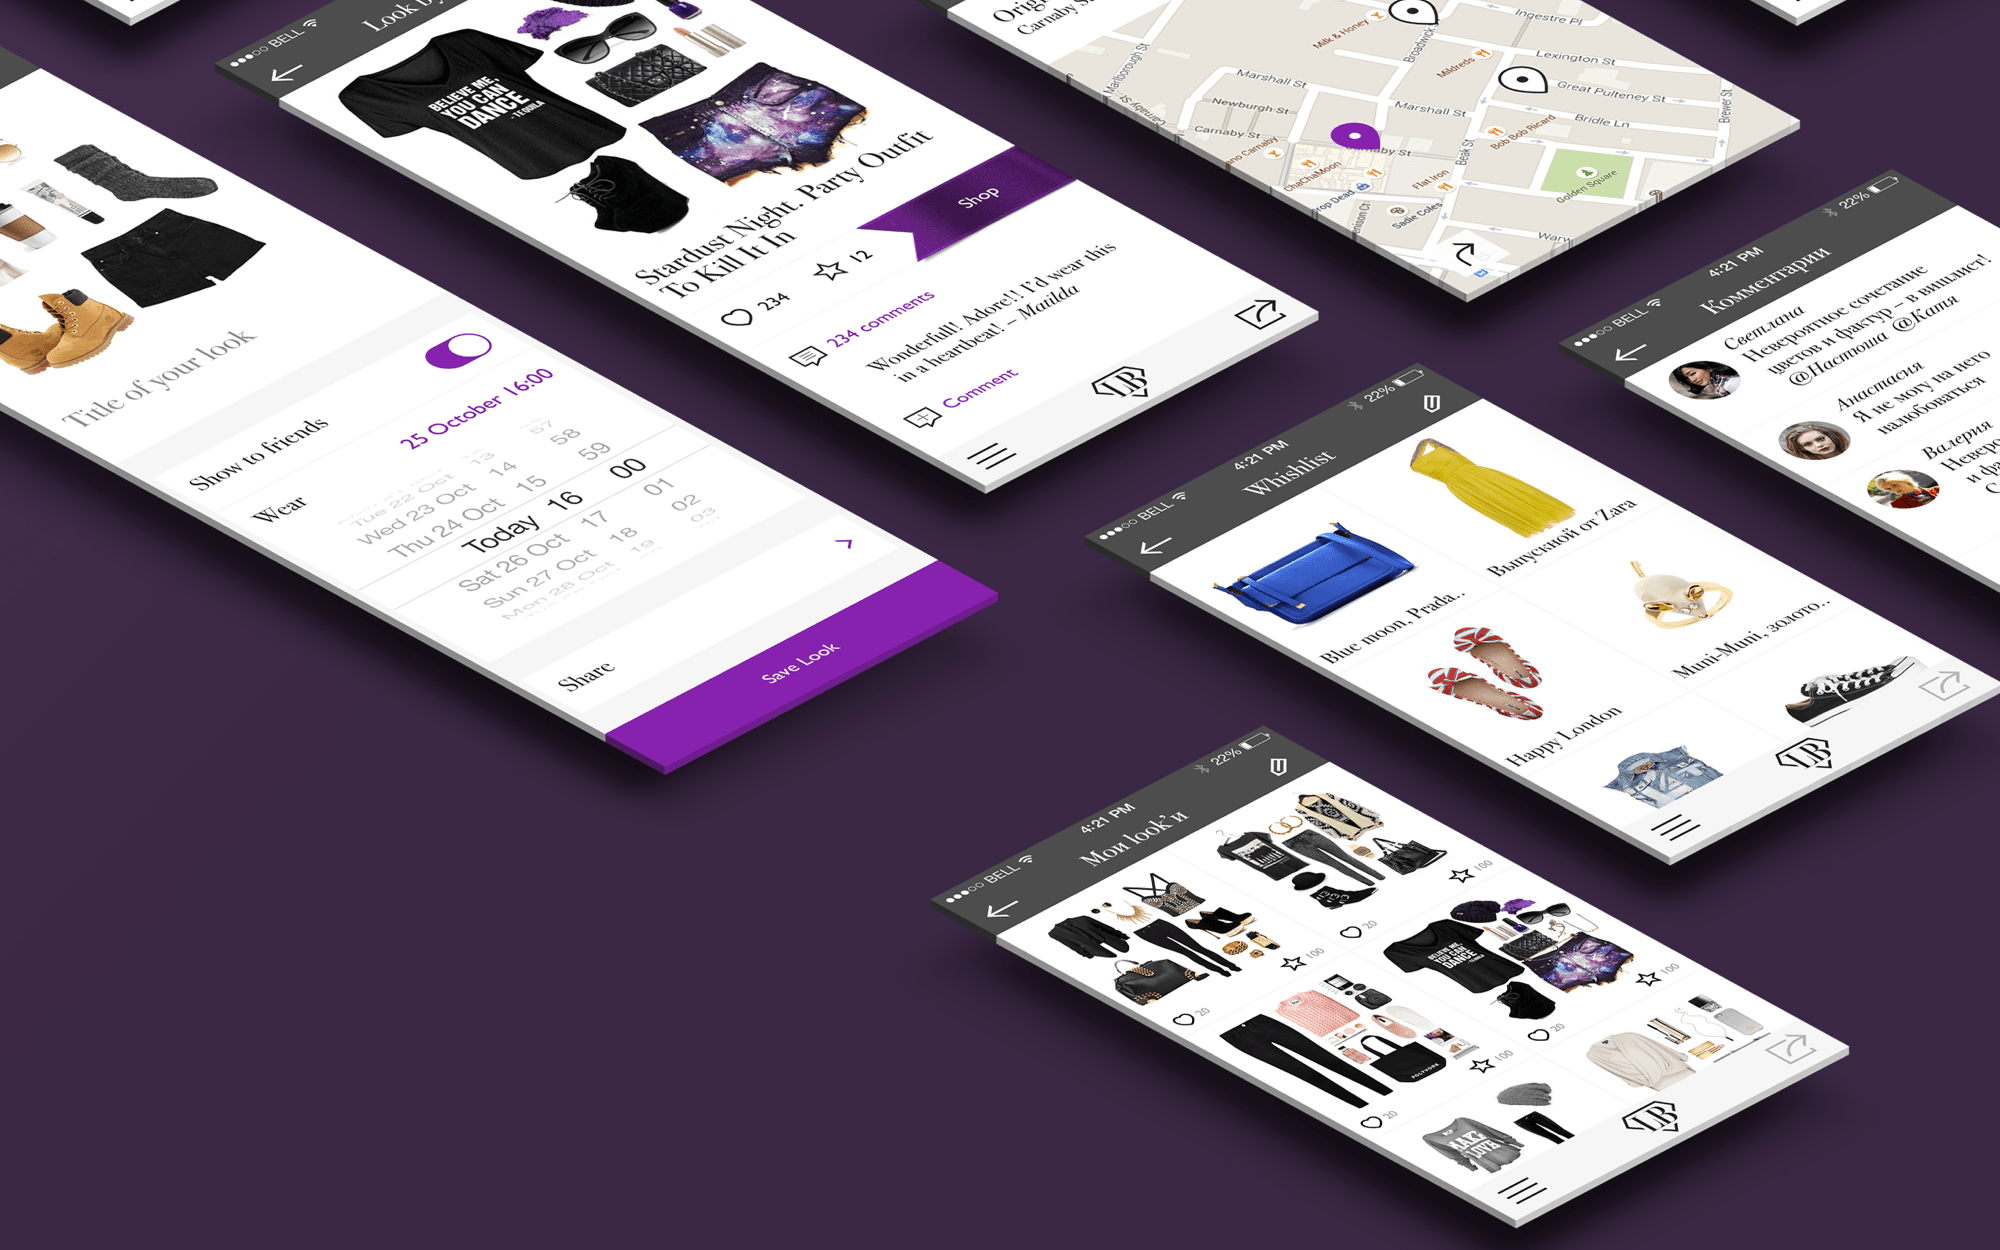 Ios fashion app design